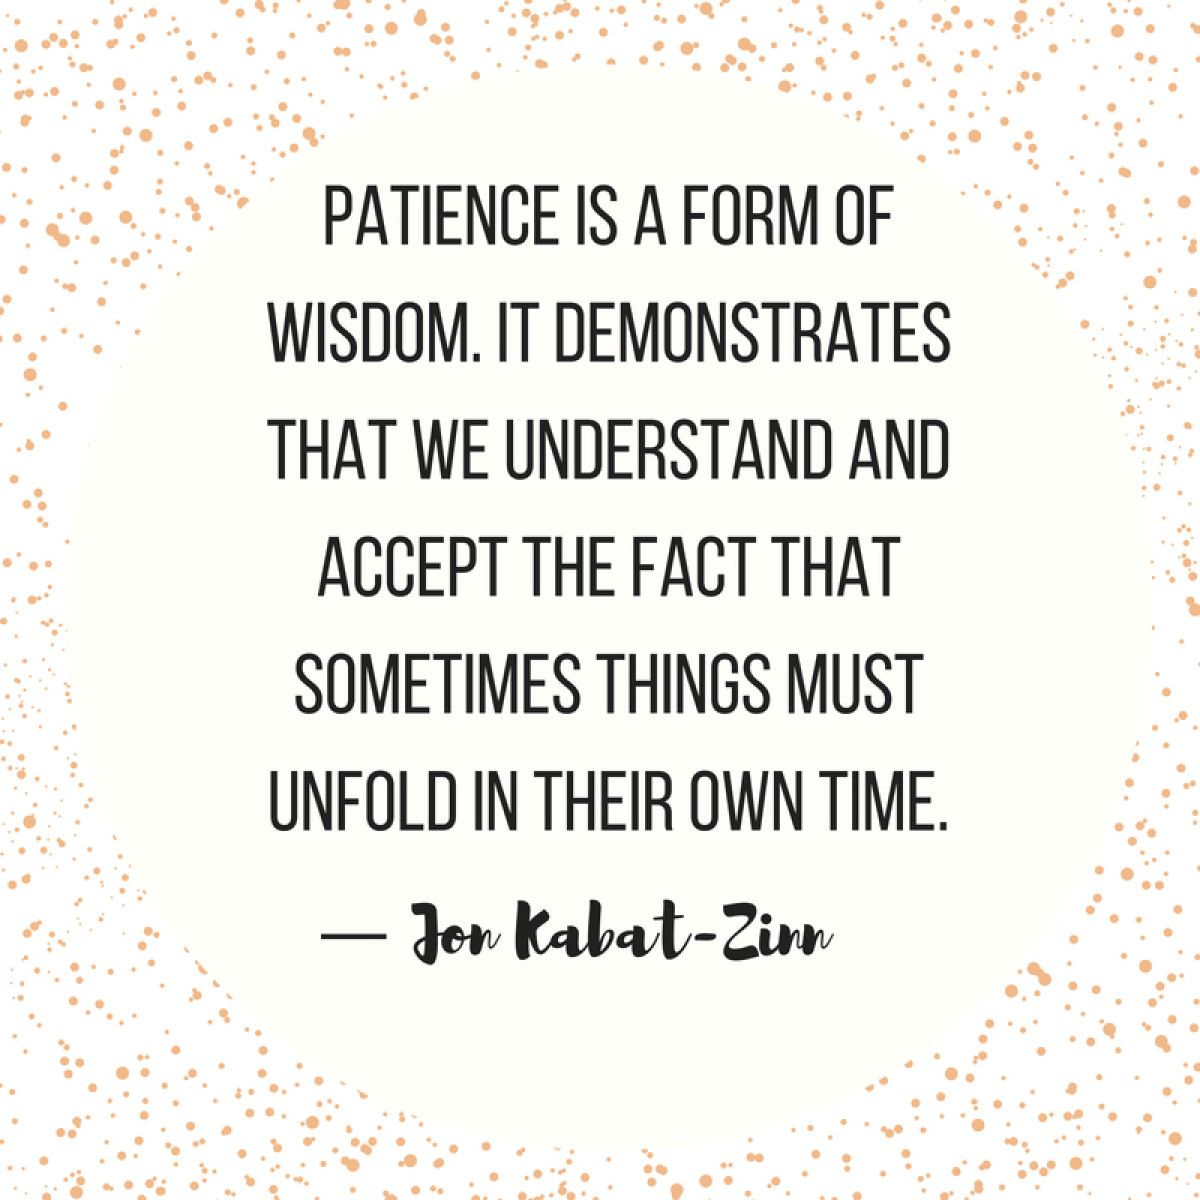 Patience is a form of wisdom. It demonstrates that we understand and accept the fact that sometimes things must unfold in their own time. — Jon Kabat-Zinn